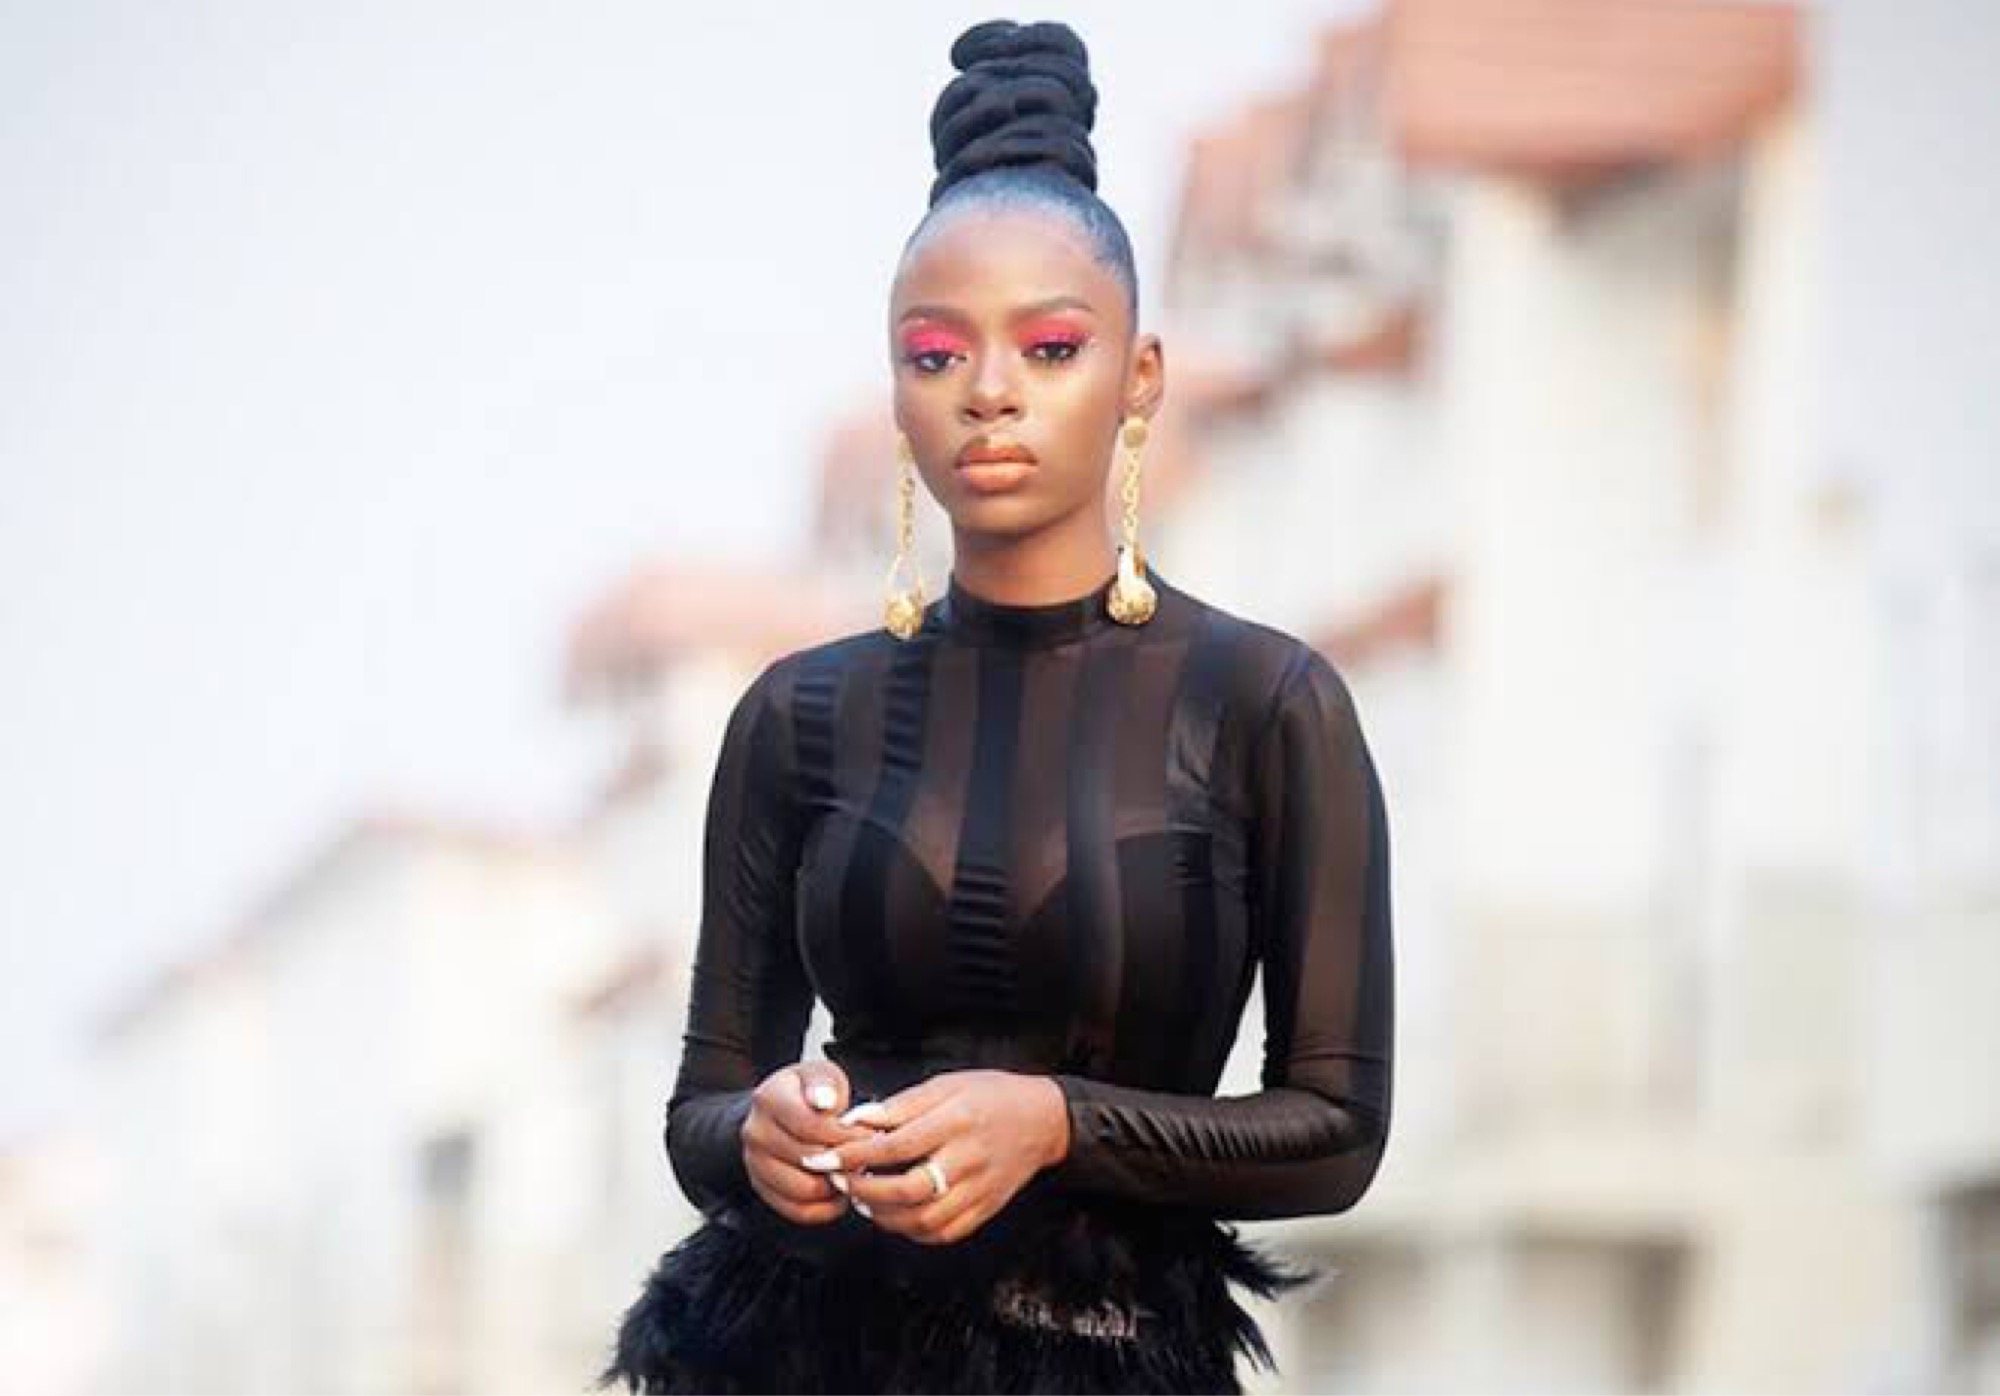 'I Will Love To See Lesbianism Legalized In Nigeria' - BBNaija's Diane